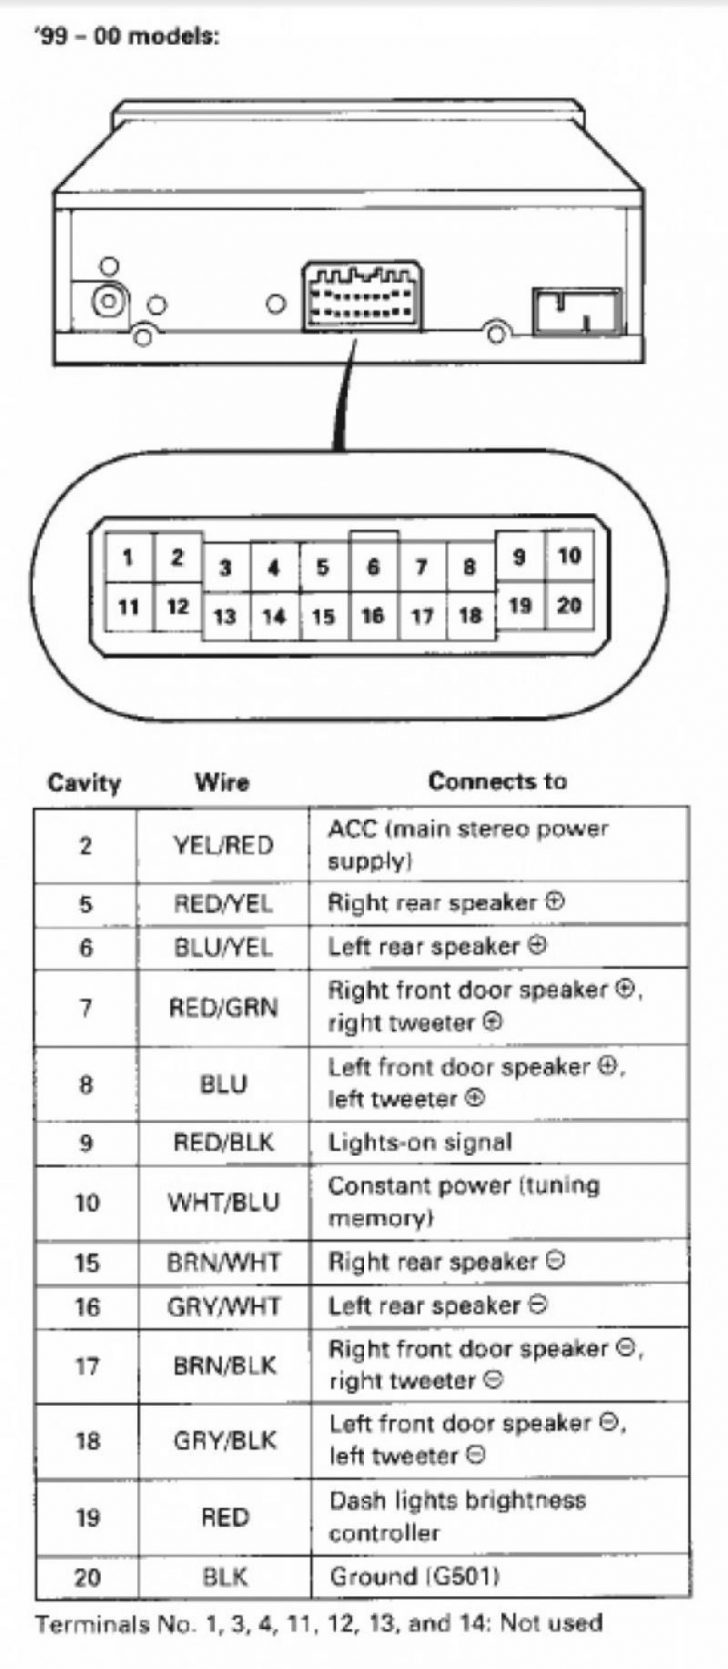 medium resolution of jvc wire diagram wiring diagram page wiring diagram for a jvc car stereo